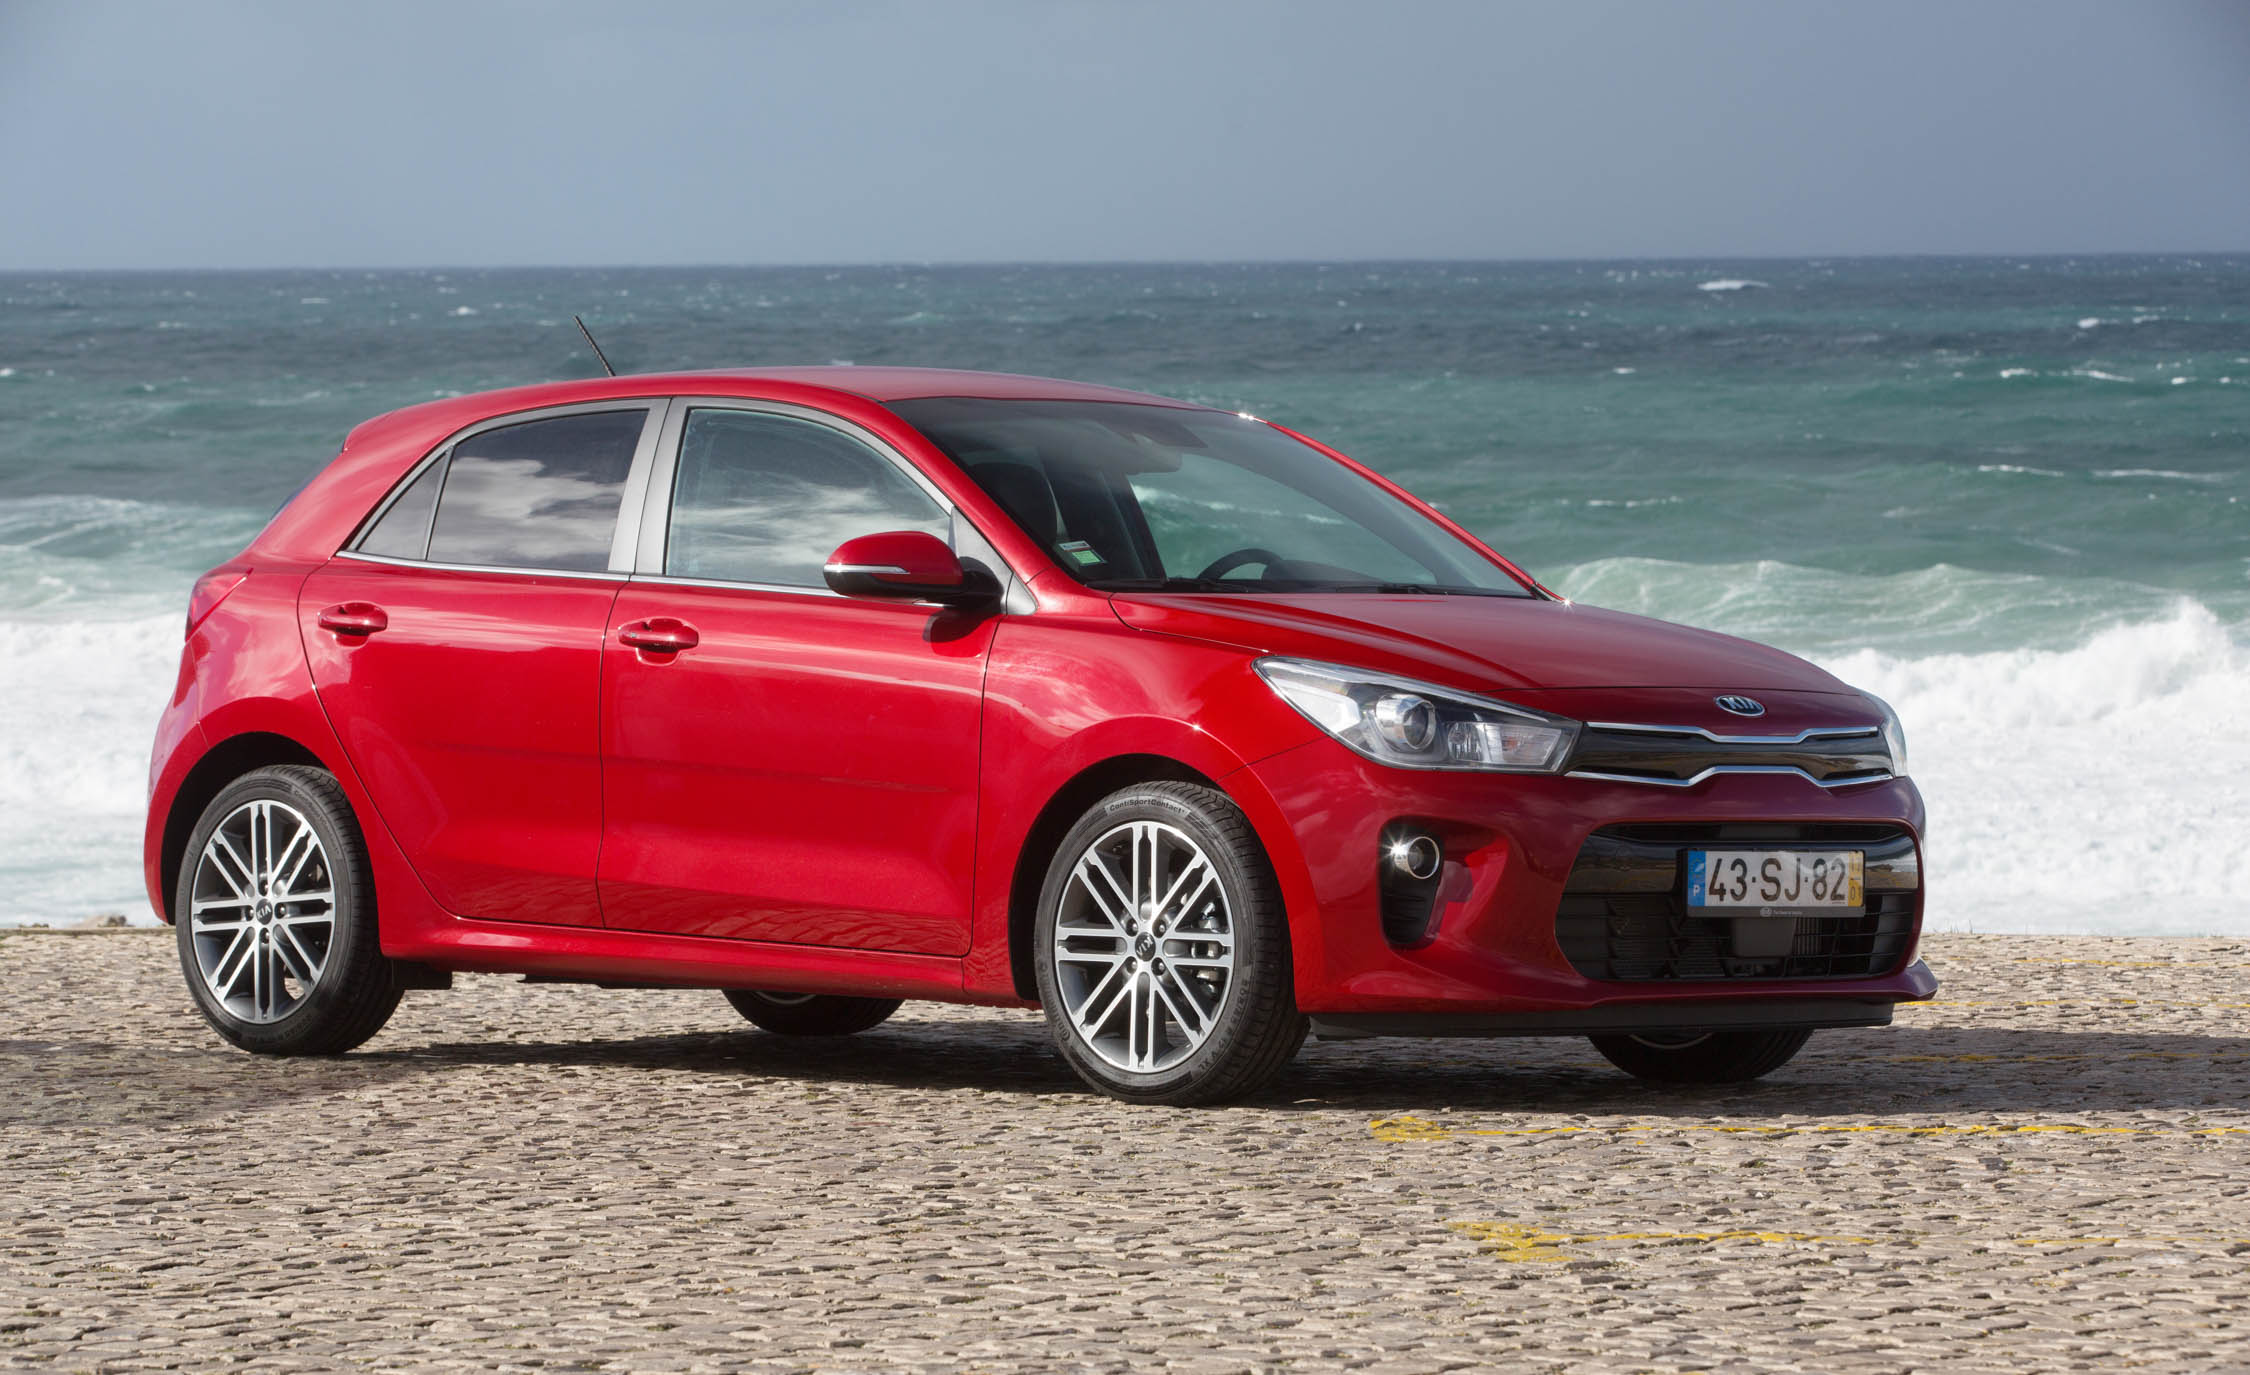 2018 Kia Rio Hatchback Red Exterior Side And Front (View 16 of 49)